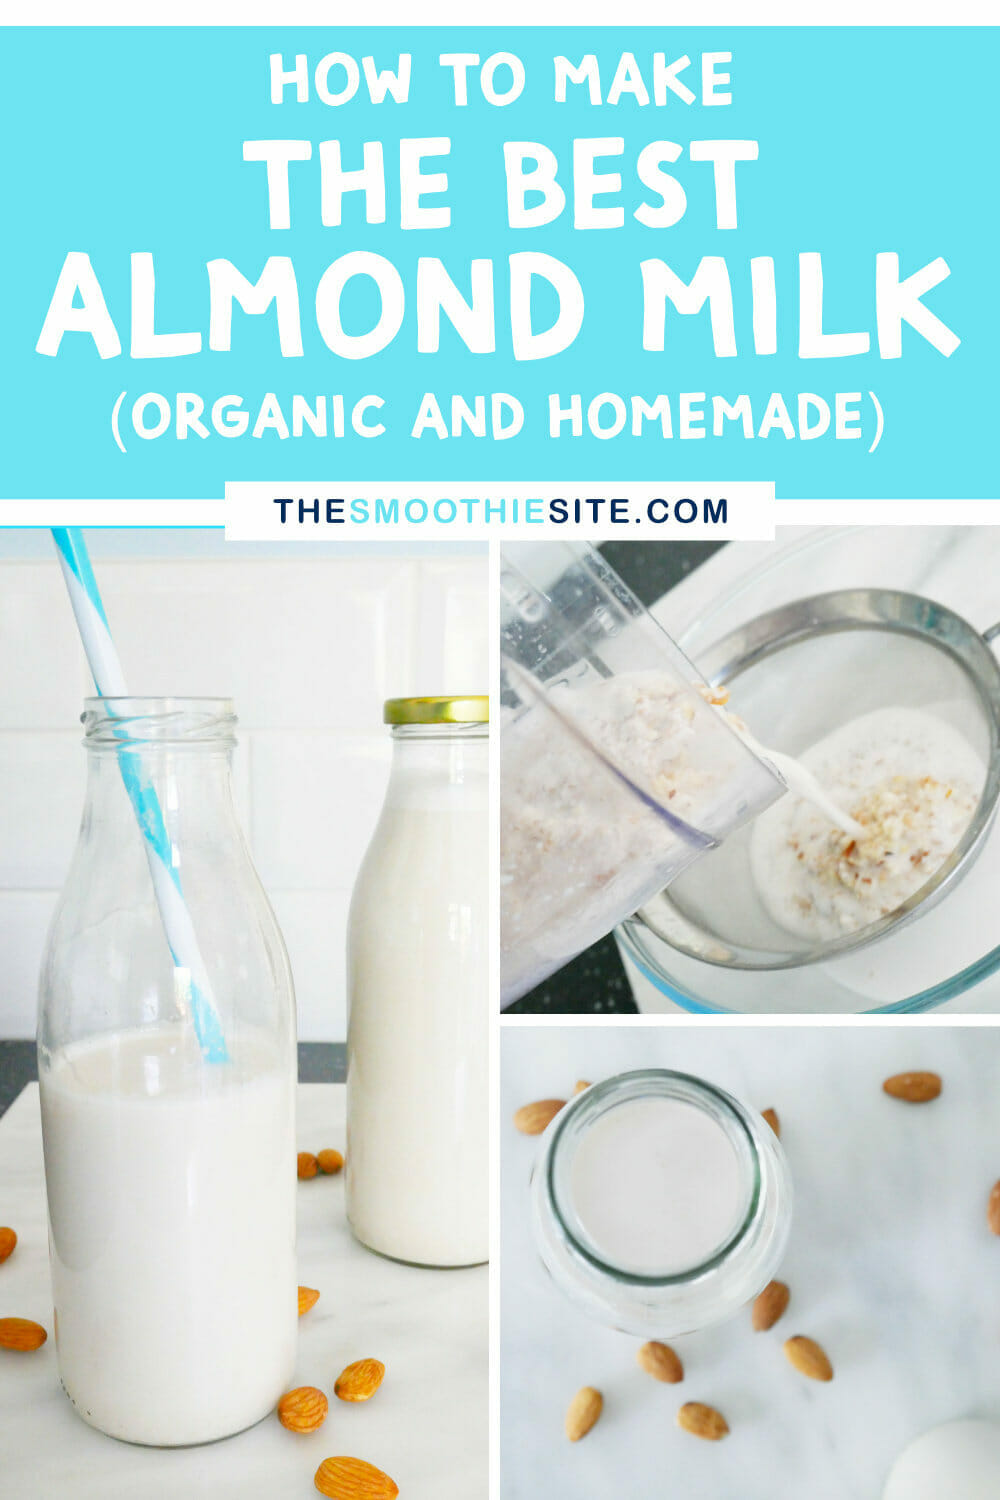 How to make almond milk (the best organic and homemade recipe) via @thesmoothiesite